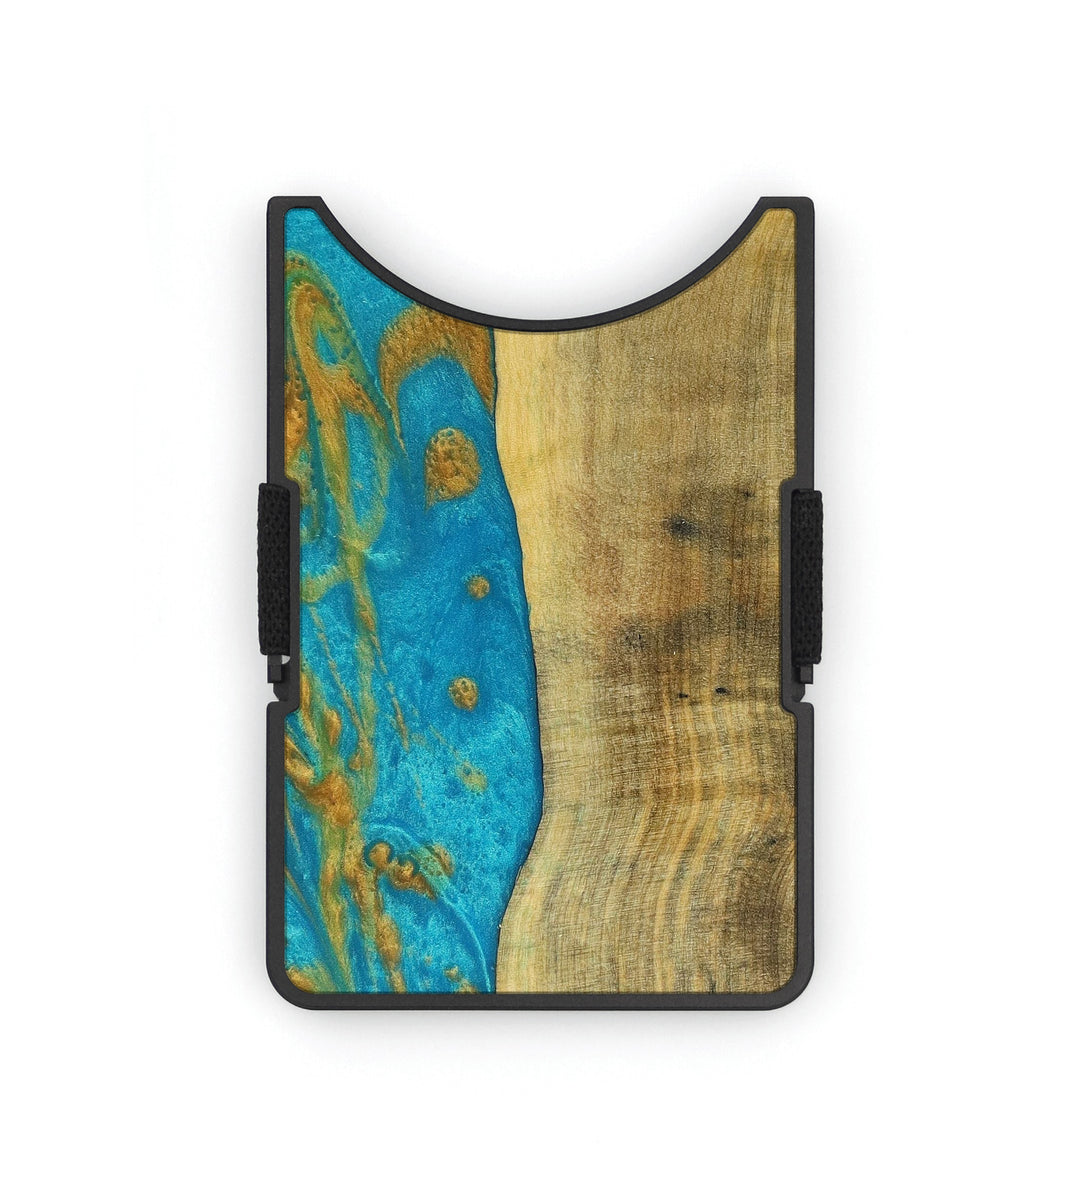 Alloy Wood+Resin Wallet - Bekki (Teal & Gold, 354510)